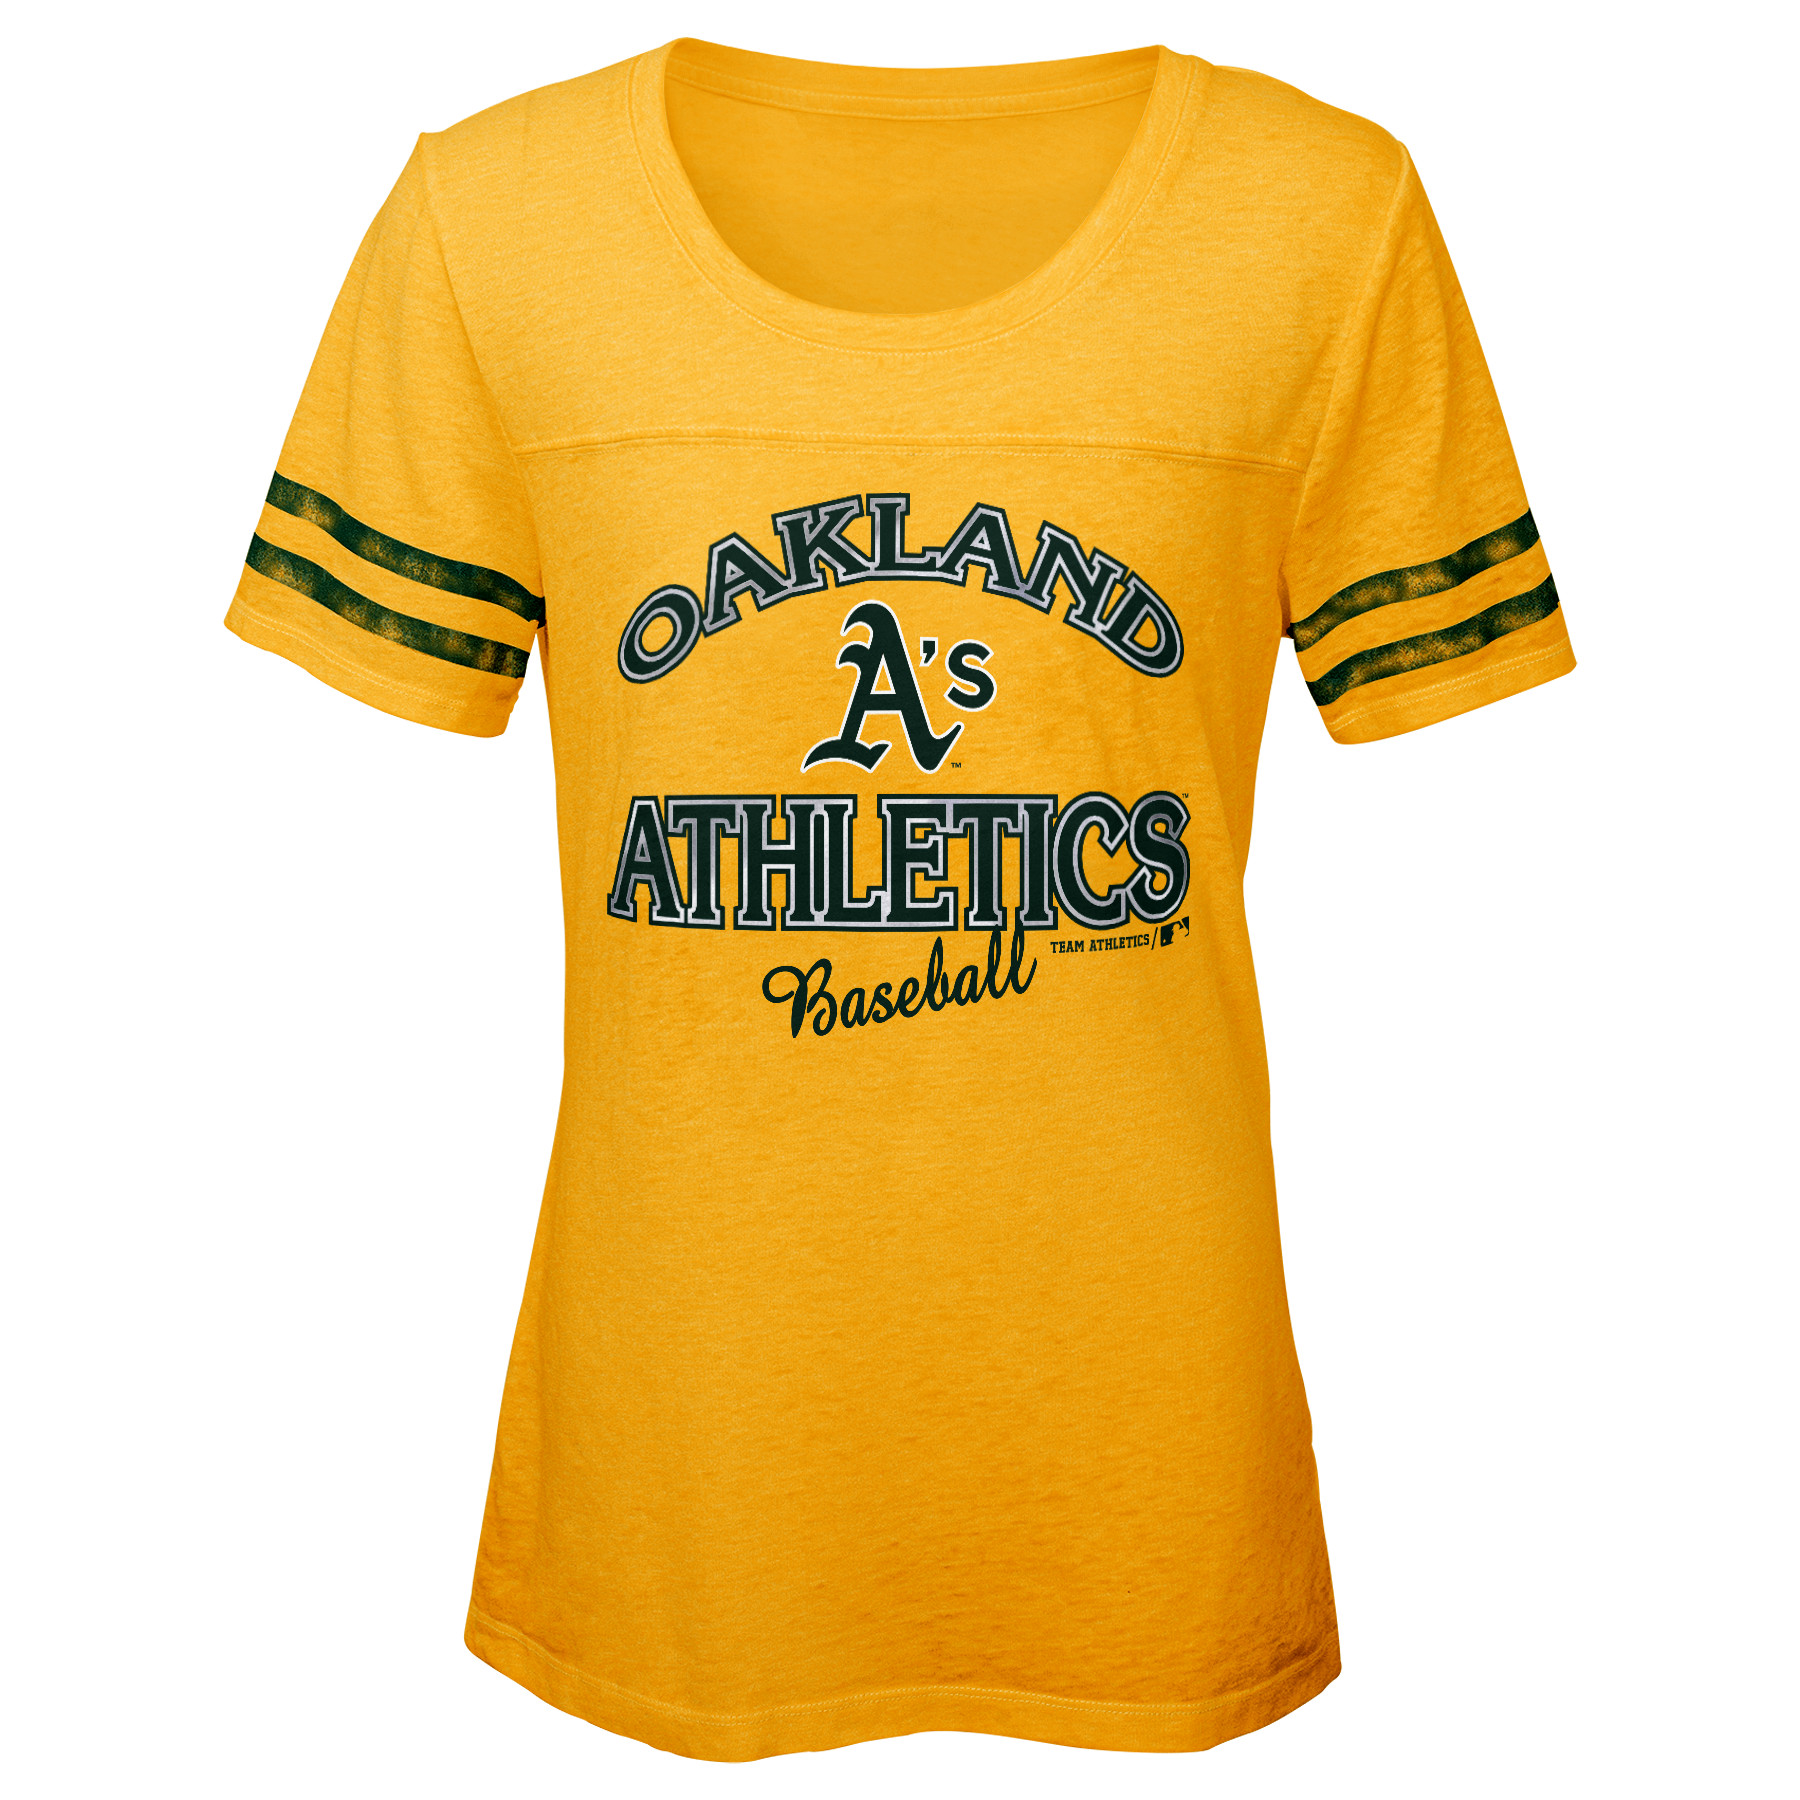 MLB OAKLAND A'S TEE Short Sleeve Girls Fashion 60% Cotton 40% Polyester Alternate Team Colors 7 - 16